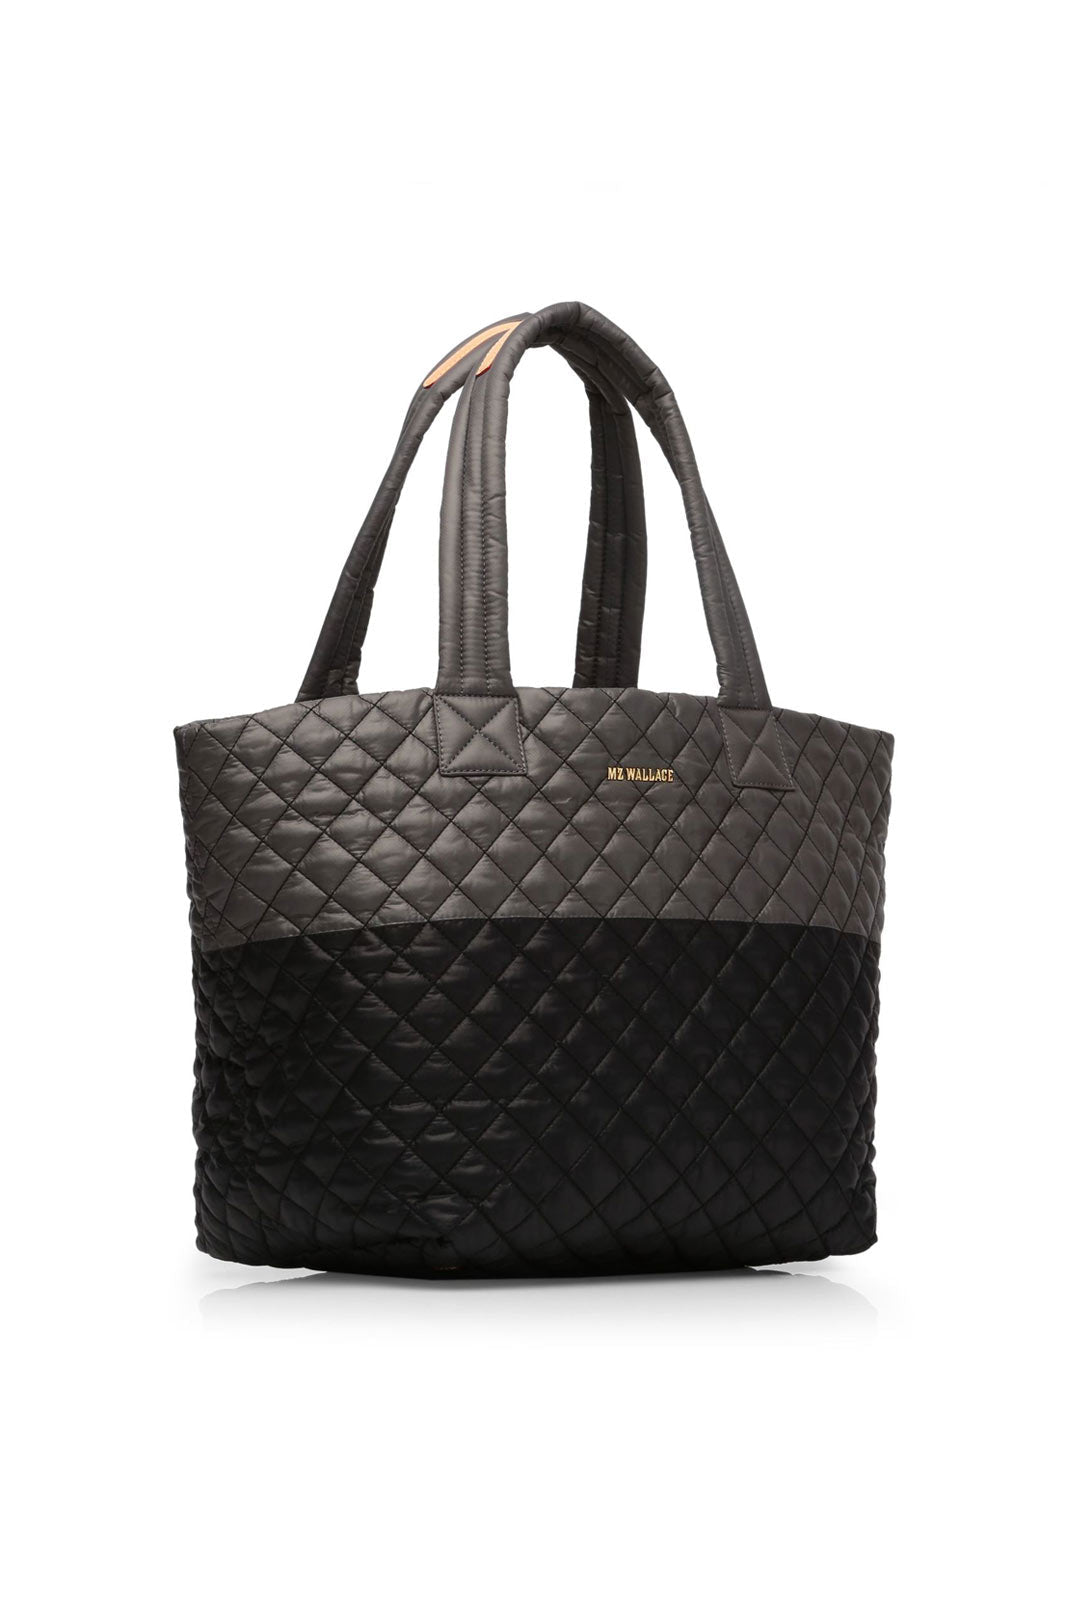 MZ Wallace Metro Tote Medium-Black/Magnet image 2 - The Sports Edit